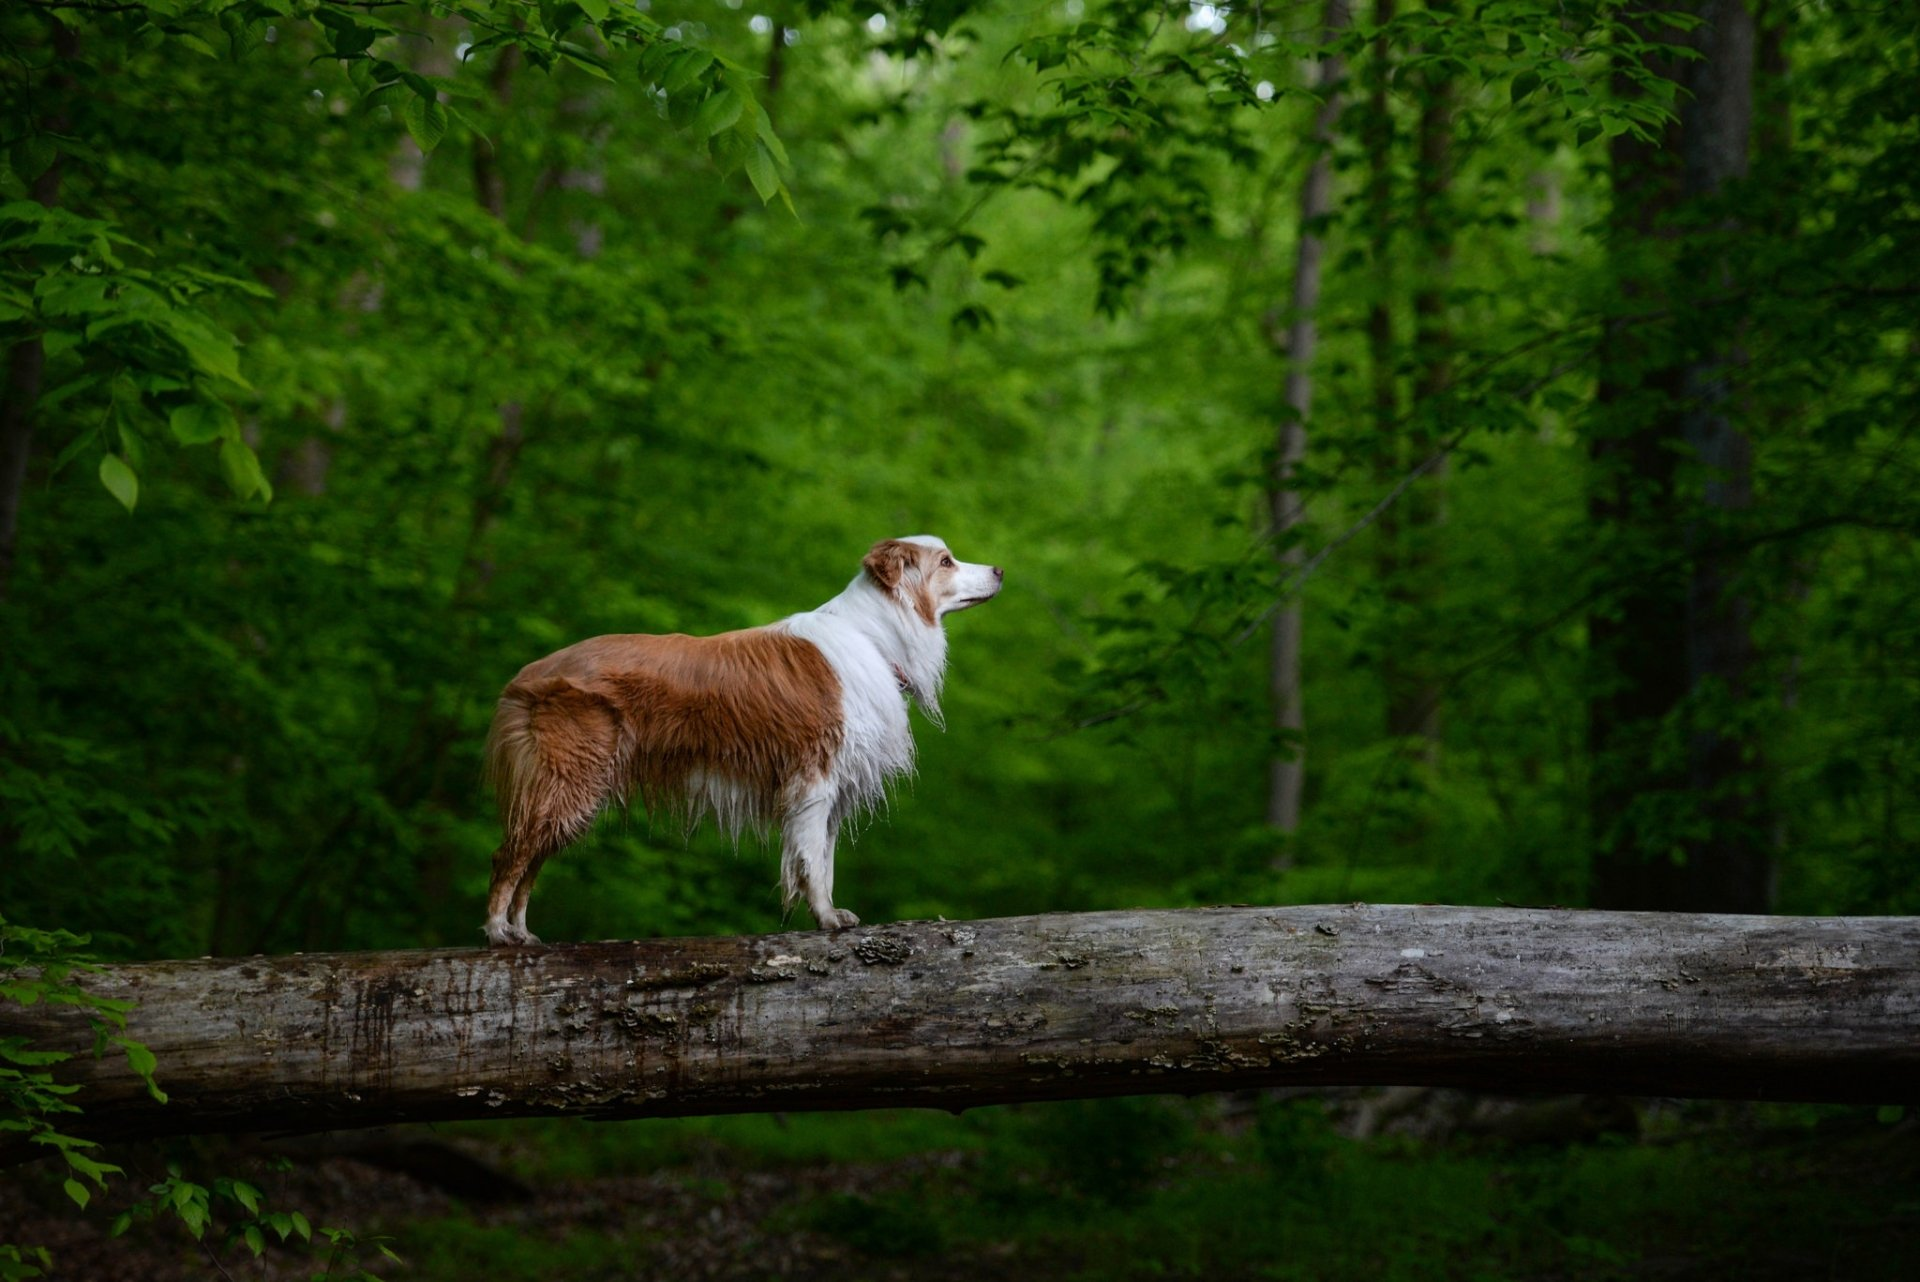 Animal - Australian Shepherd  Forest Log Pet Dog Wallpaper